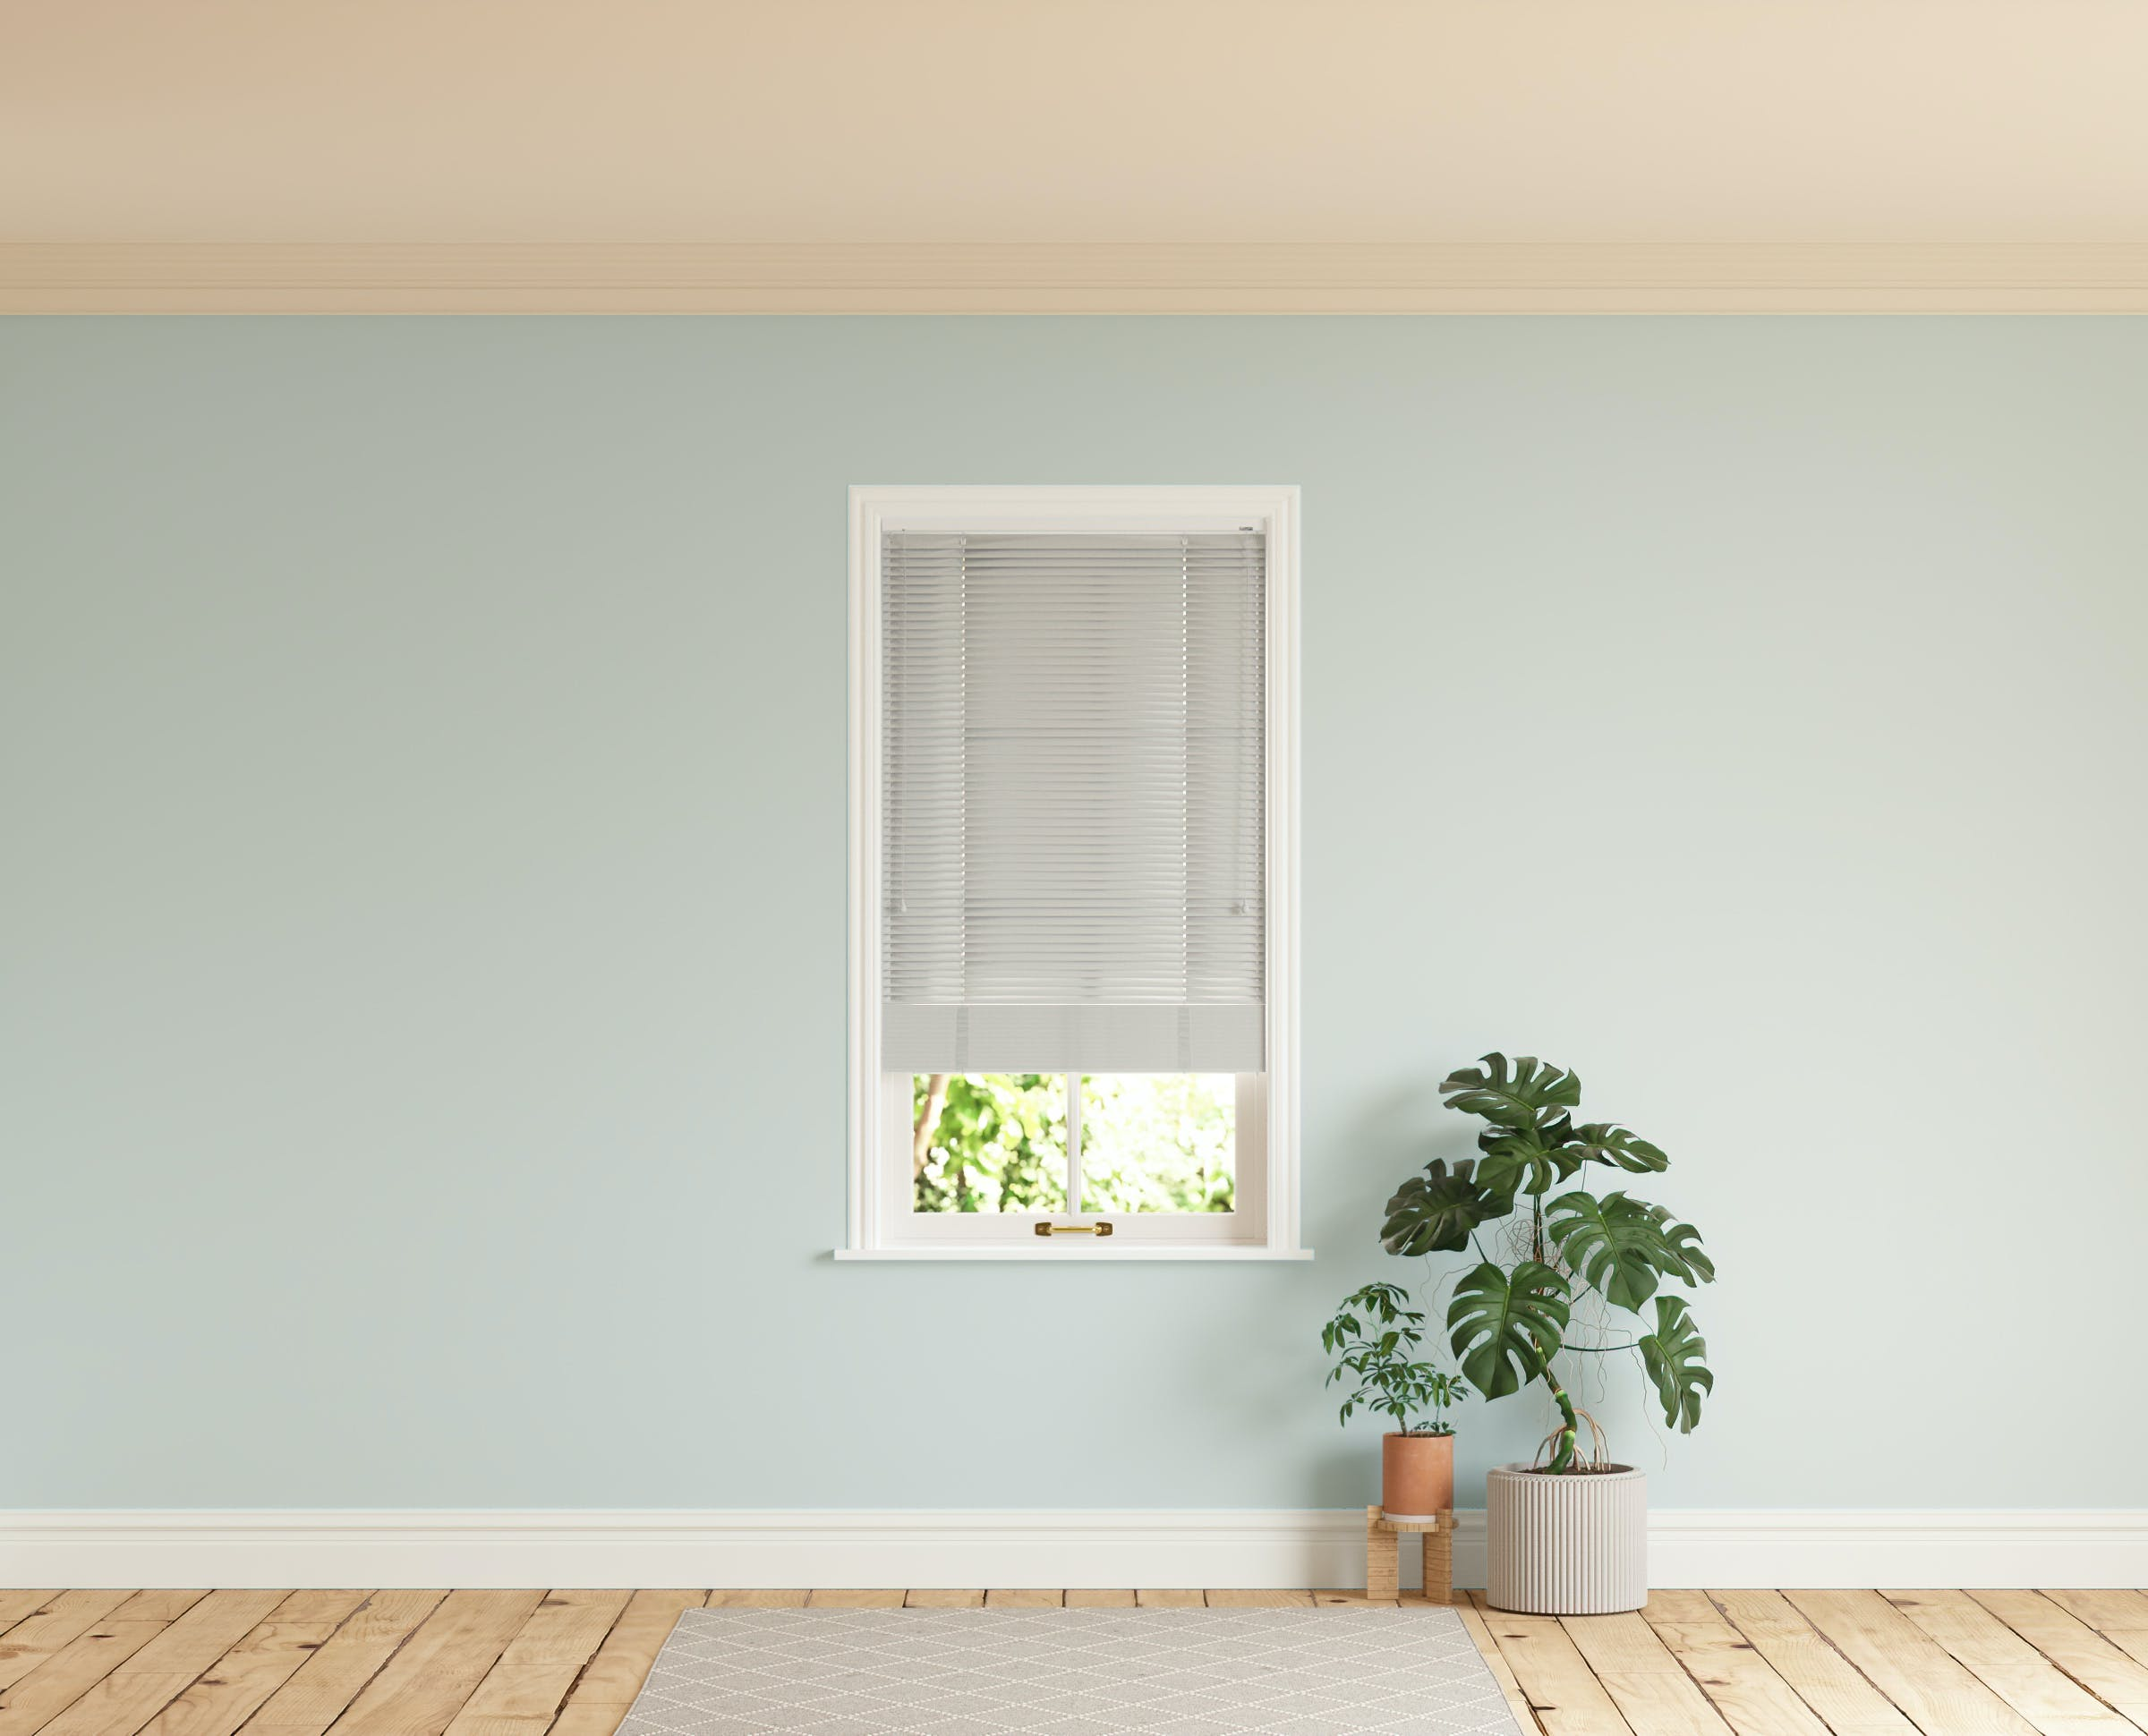 Room with walls painted in Lick Blue 01 and Grey 03 Venetian fine grain blinds